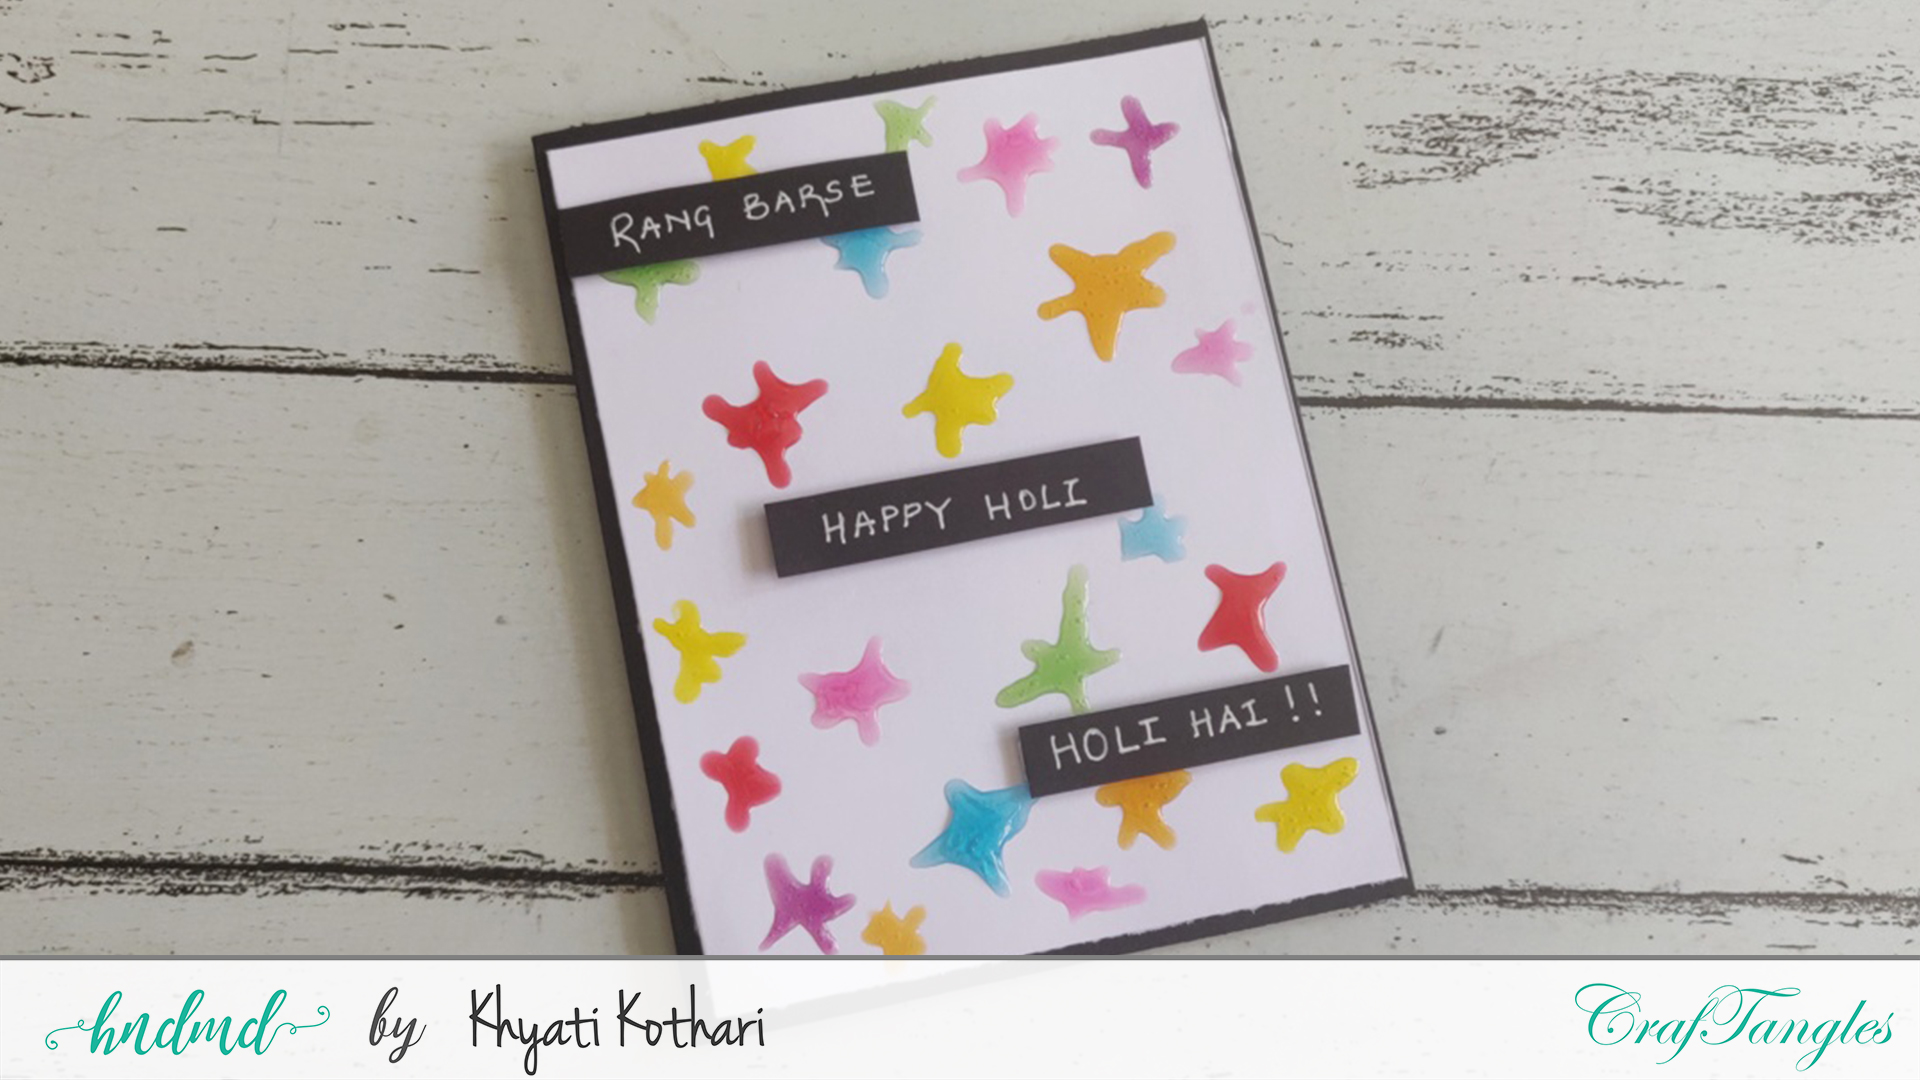 How to make easy cards using basic supplies 1